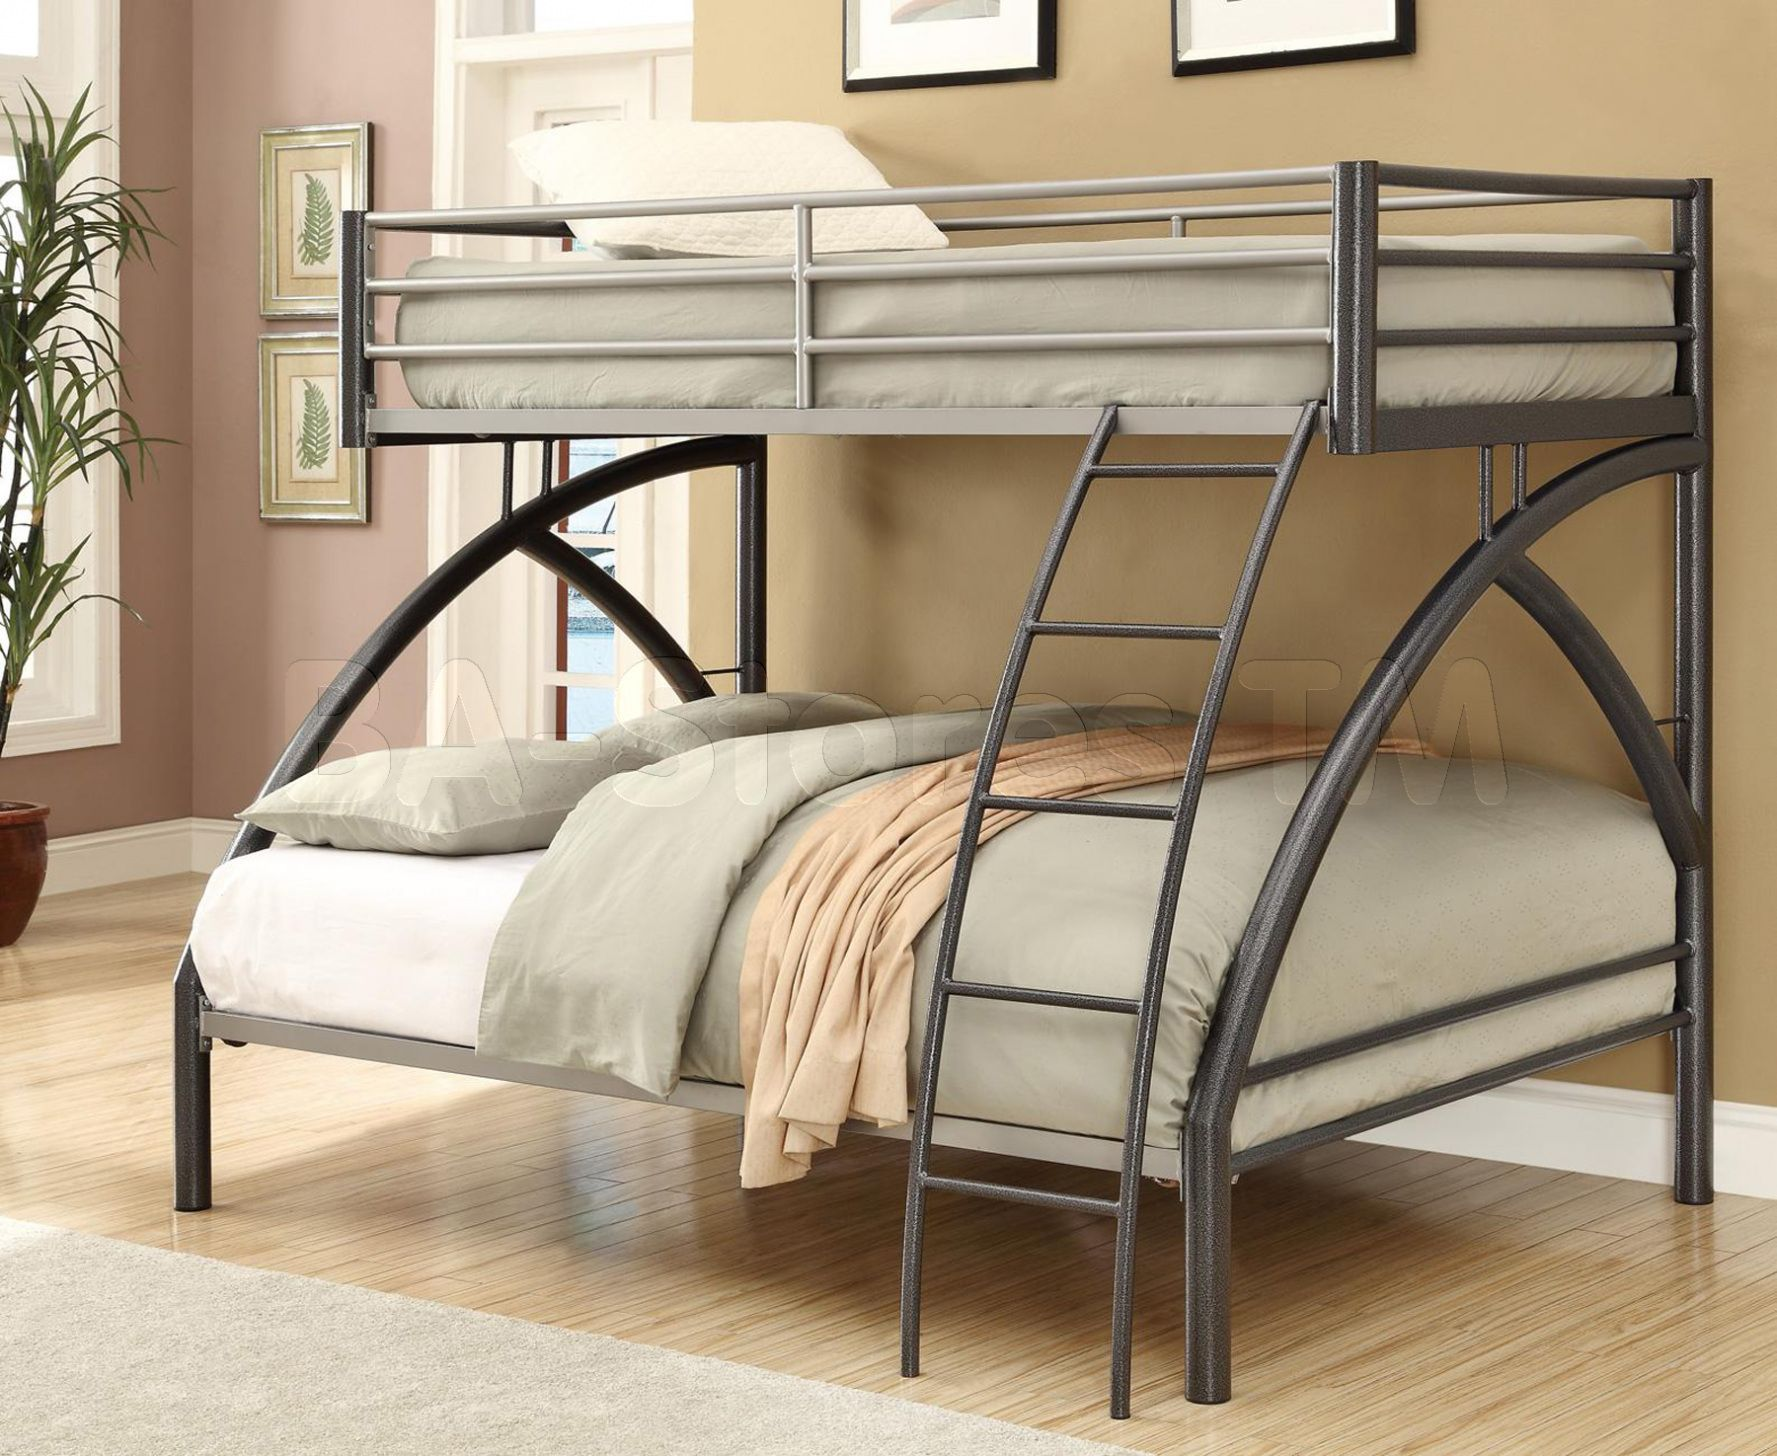 20+ Metal Bunk Beds With Stairs  Simple Interior Design